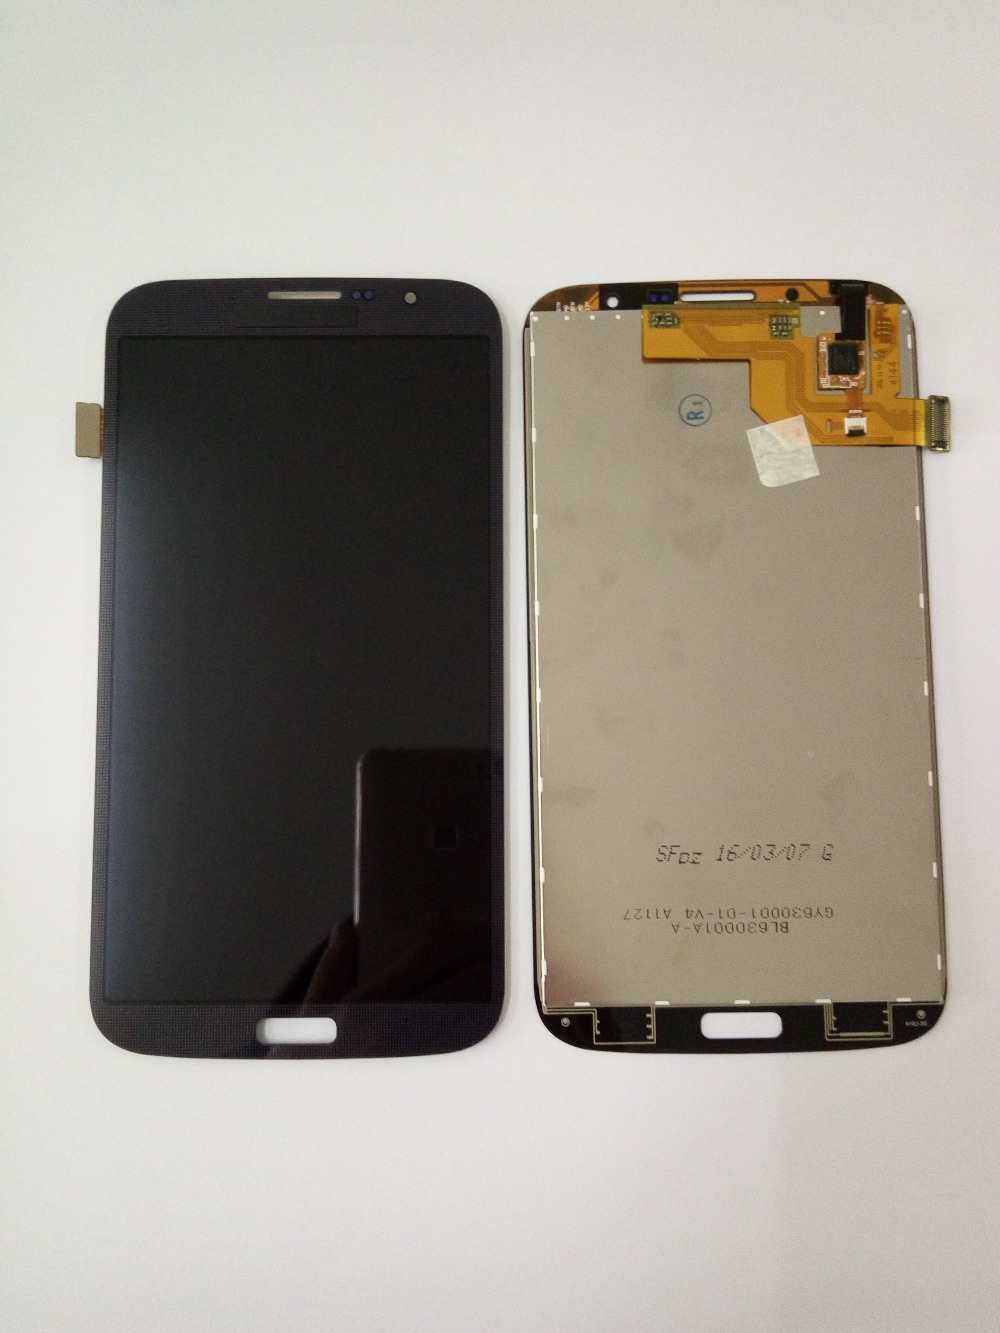 10 Pieces Free shipping for Samsung Galaxy Mega 6.3 i9200 lcd screen display digitizer Black or White